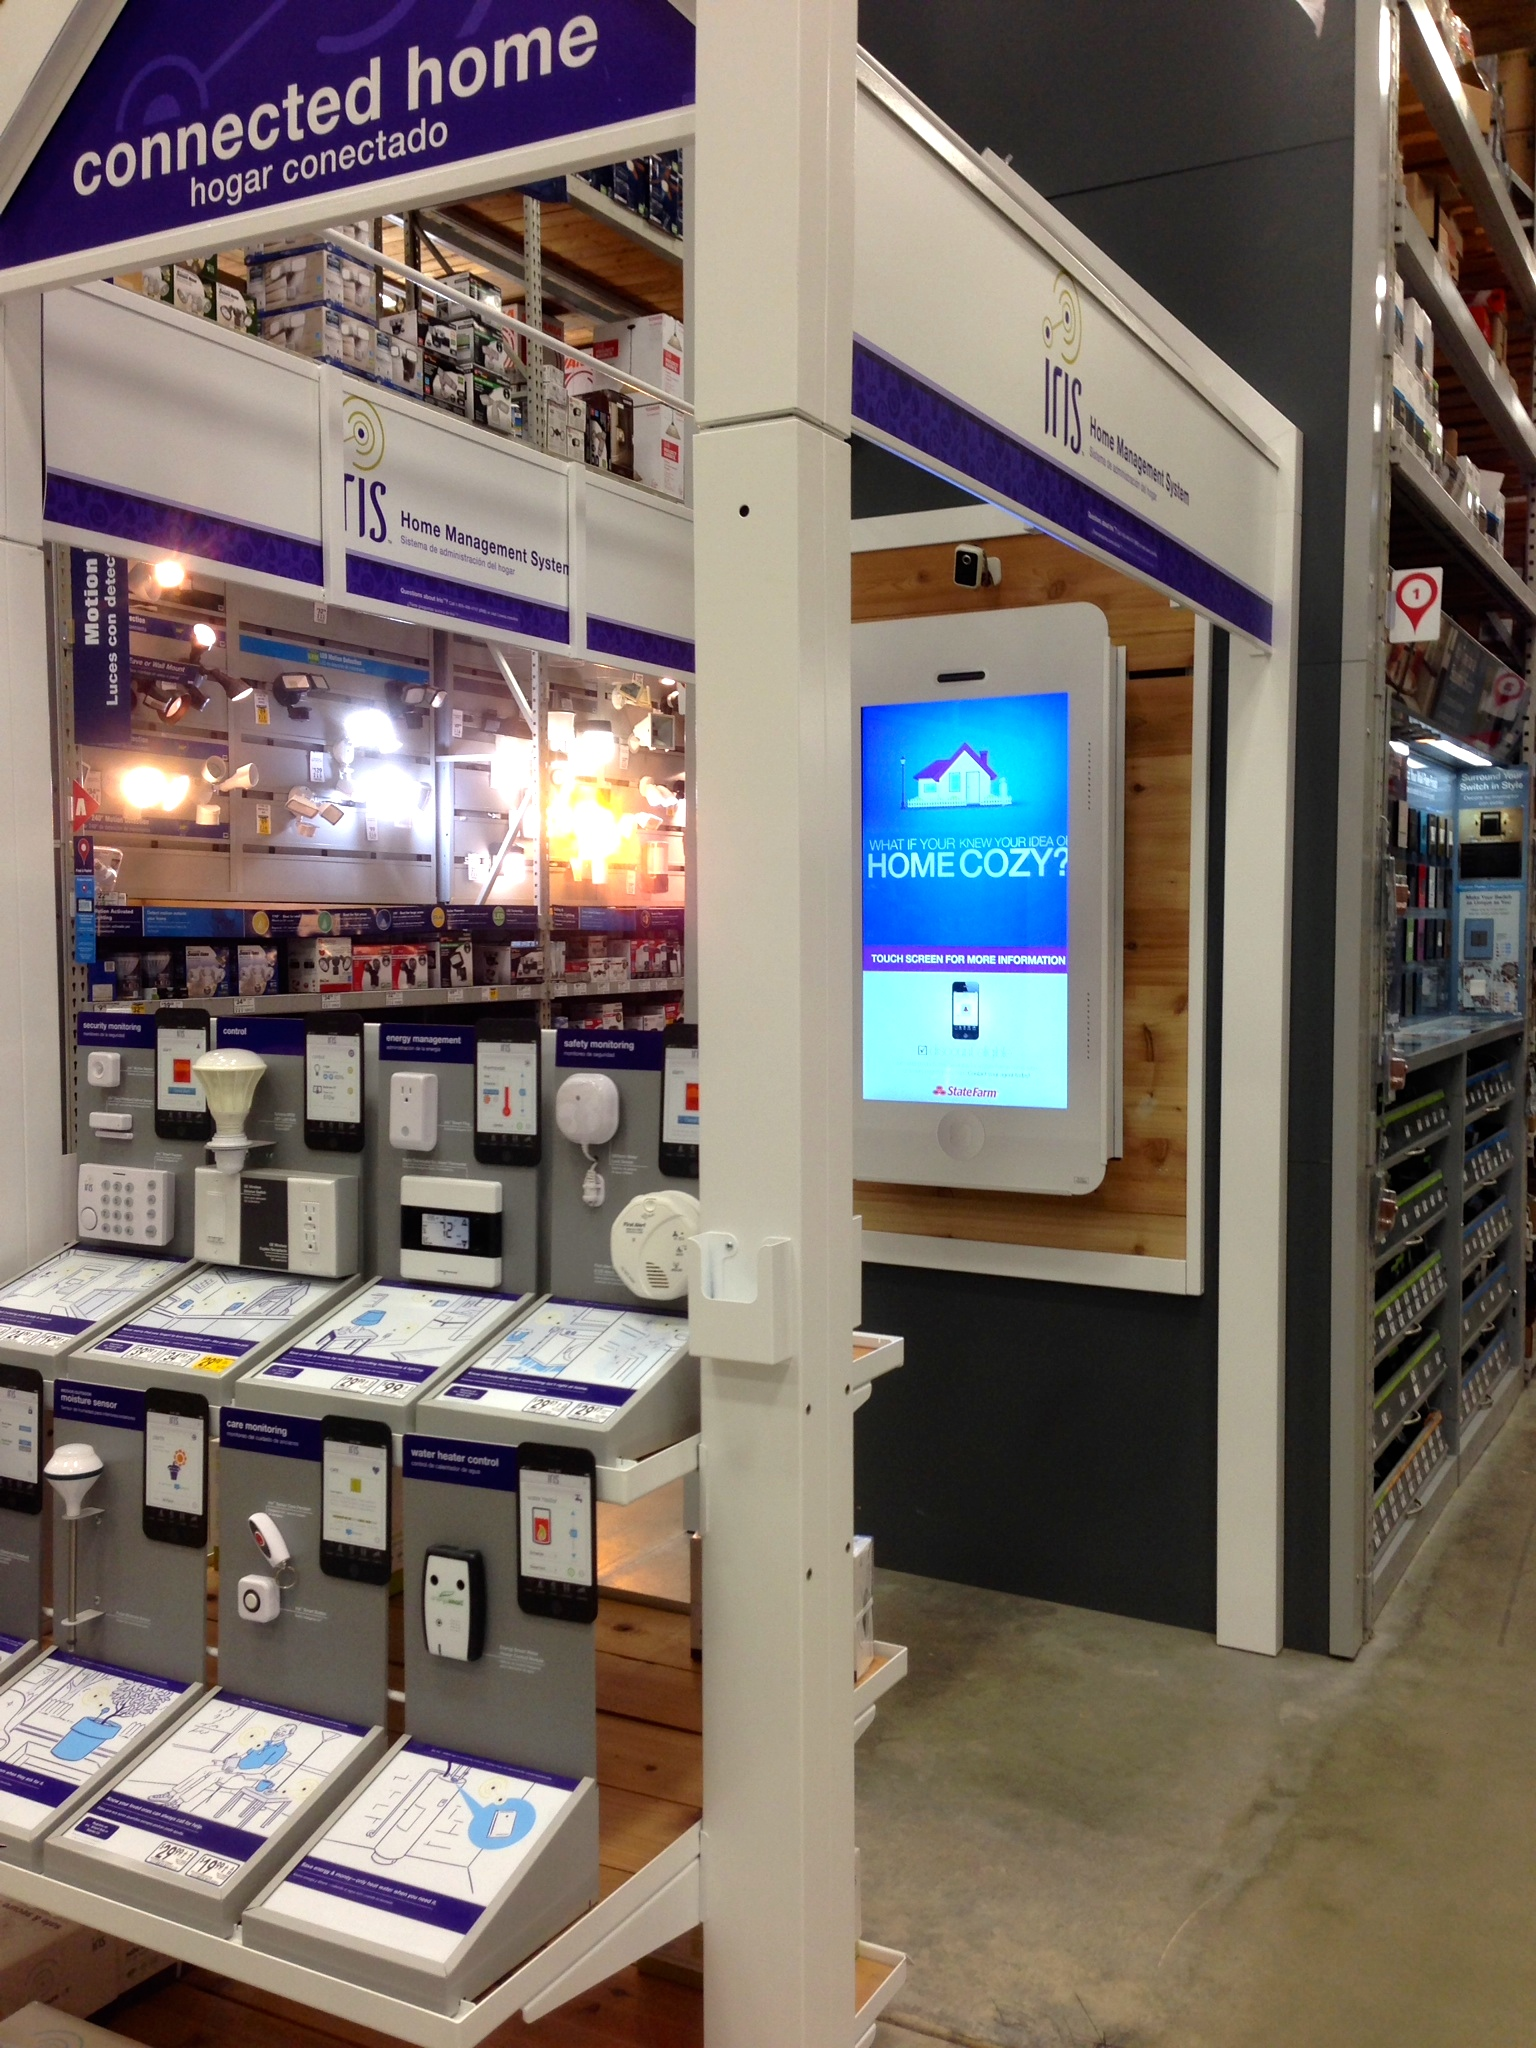 Retailers Struggle To Introduce Smarthome Tech The